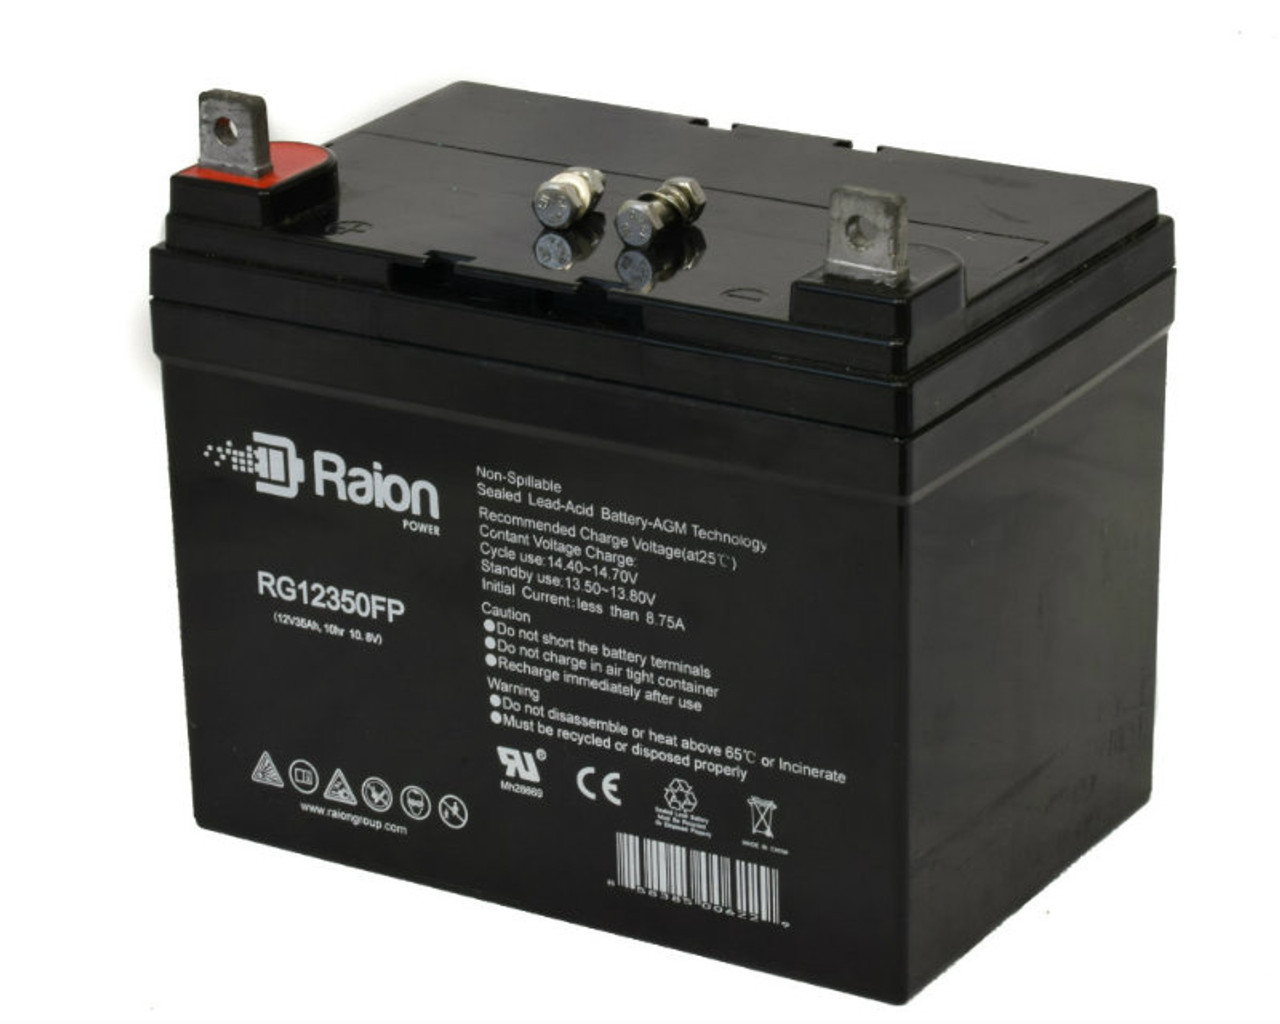 RG12350FP Sealed Lead Acid Battery Pack For ActiveCare Medical Pilot 2310 Mobility Scooter